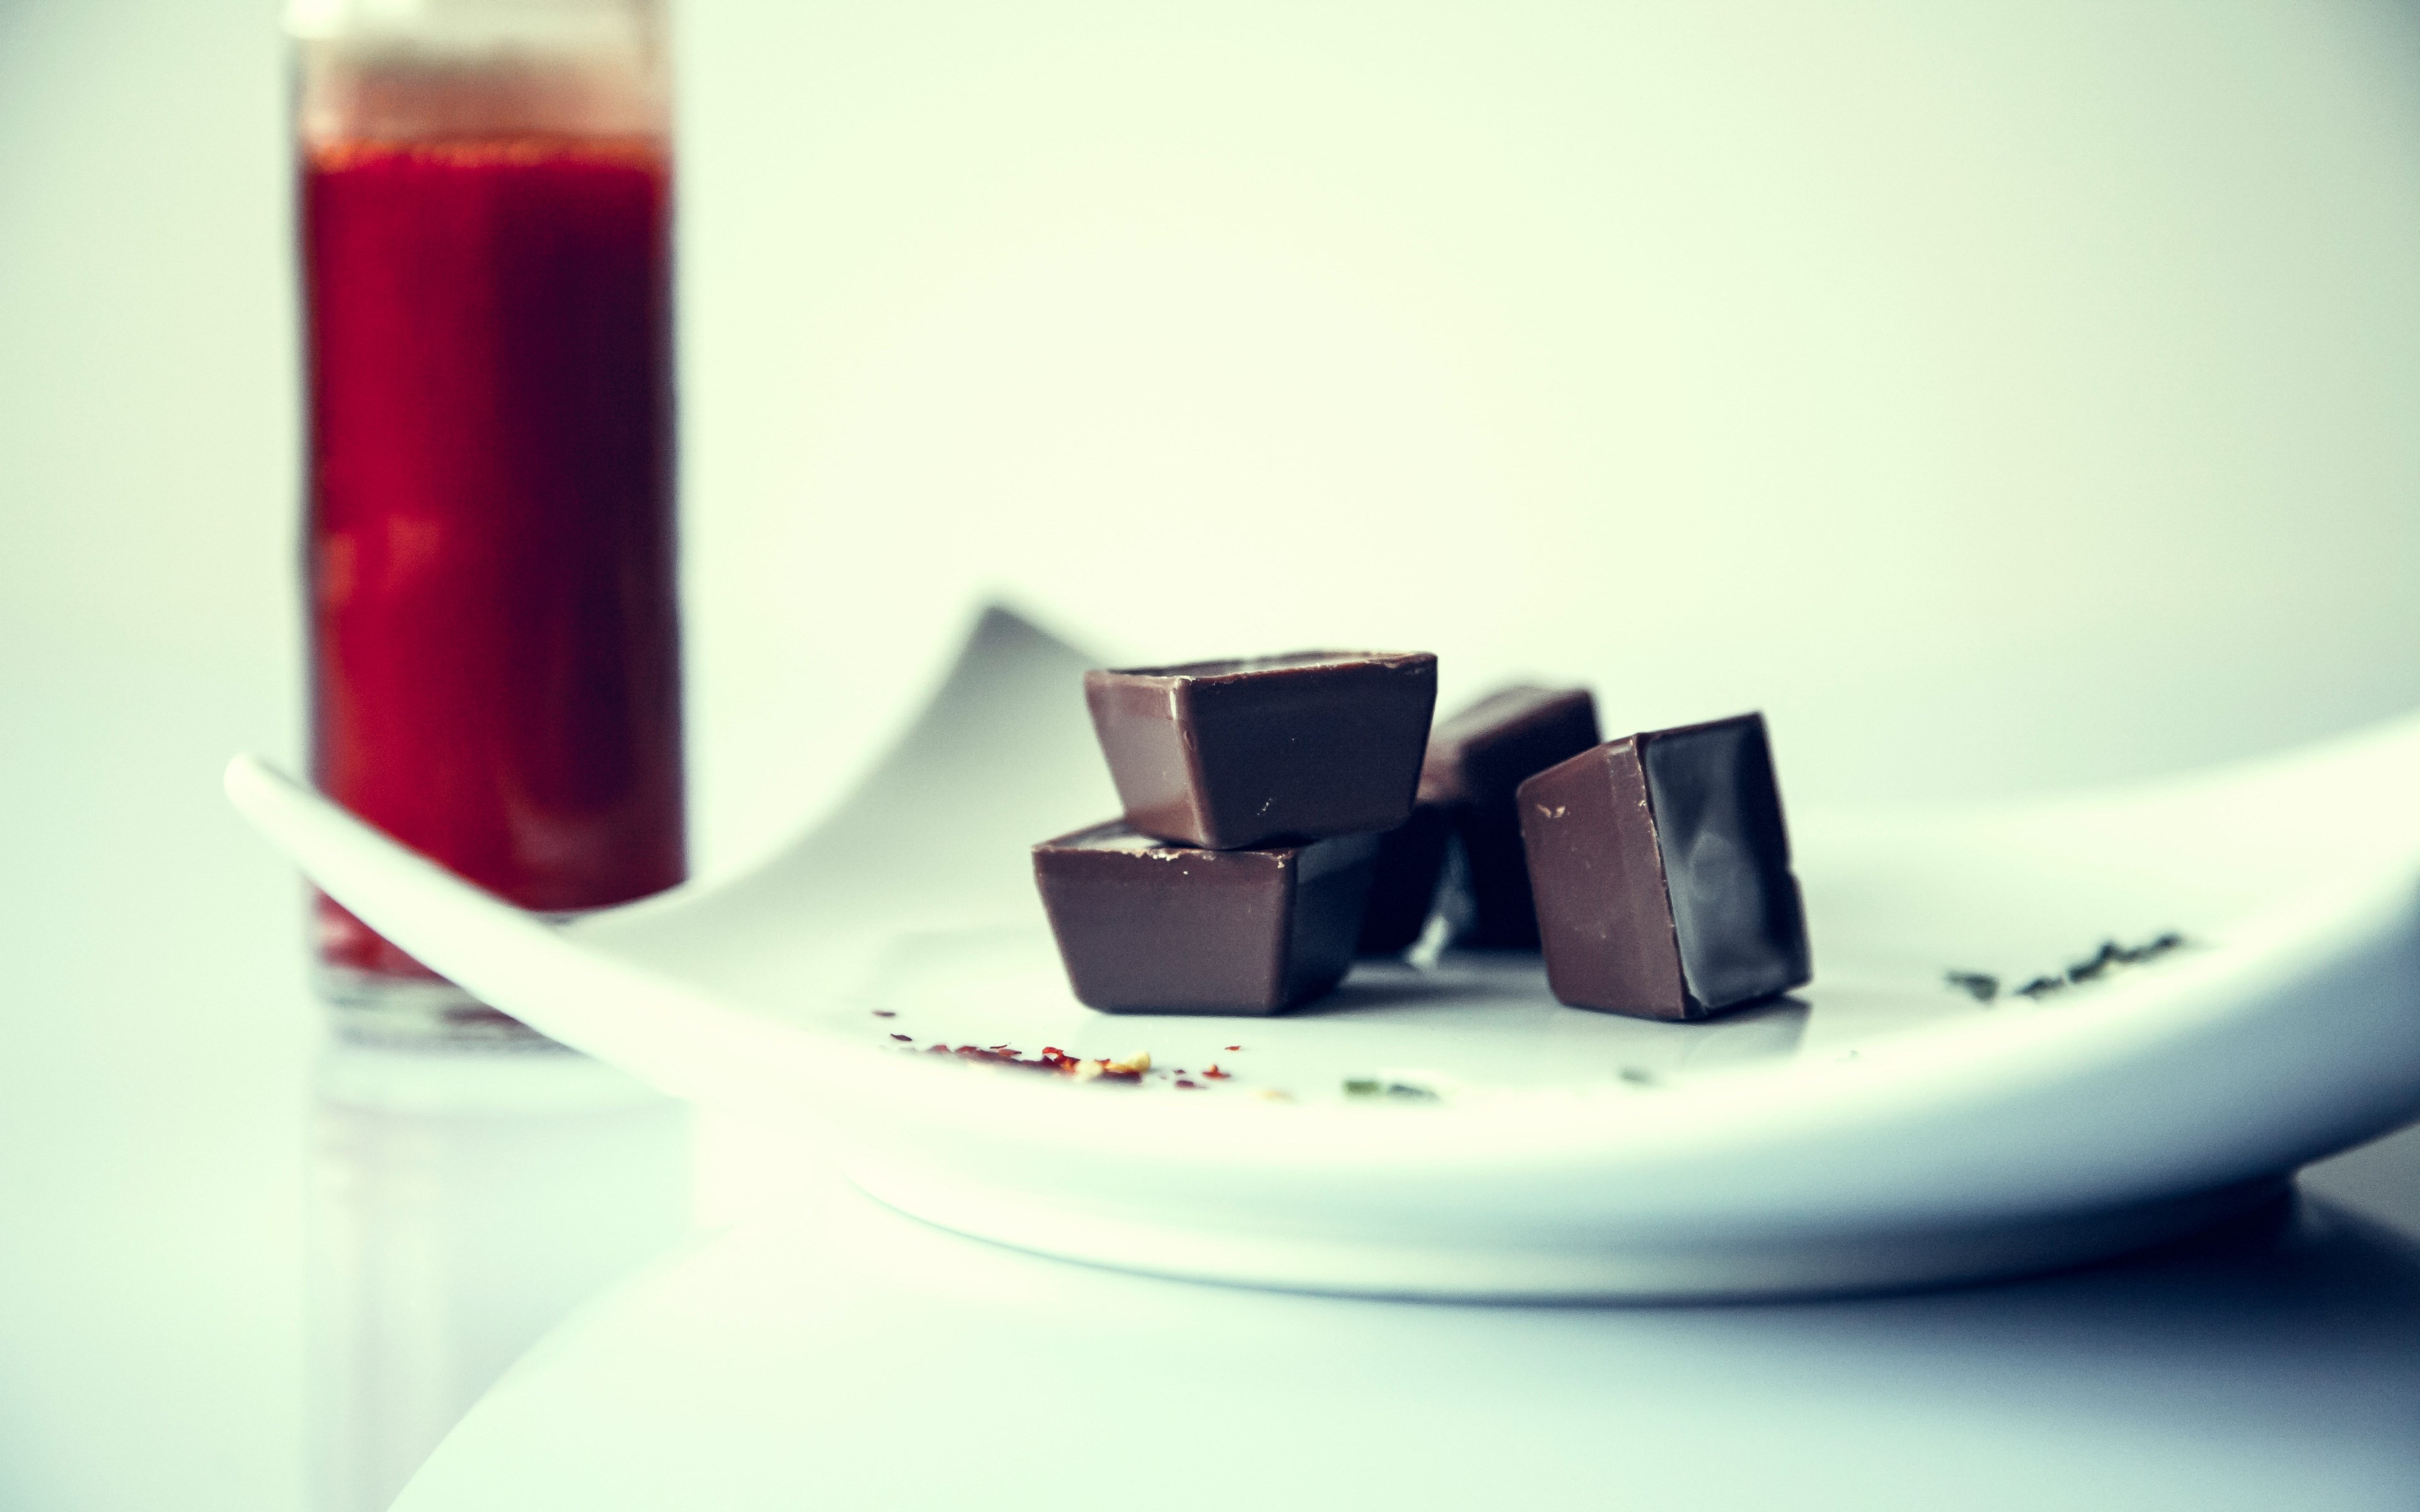 Chocolate and fresh drink wallpaper 3840x2400